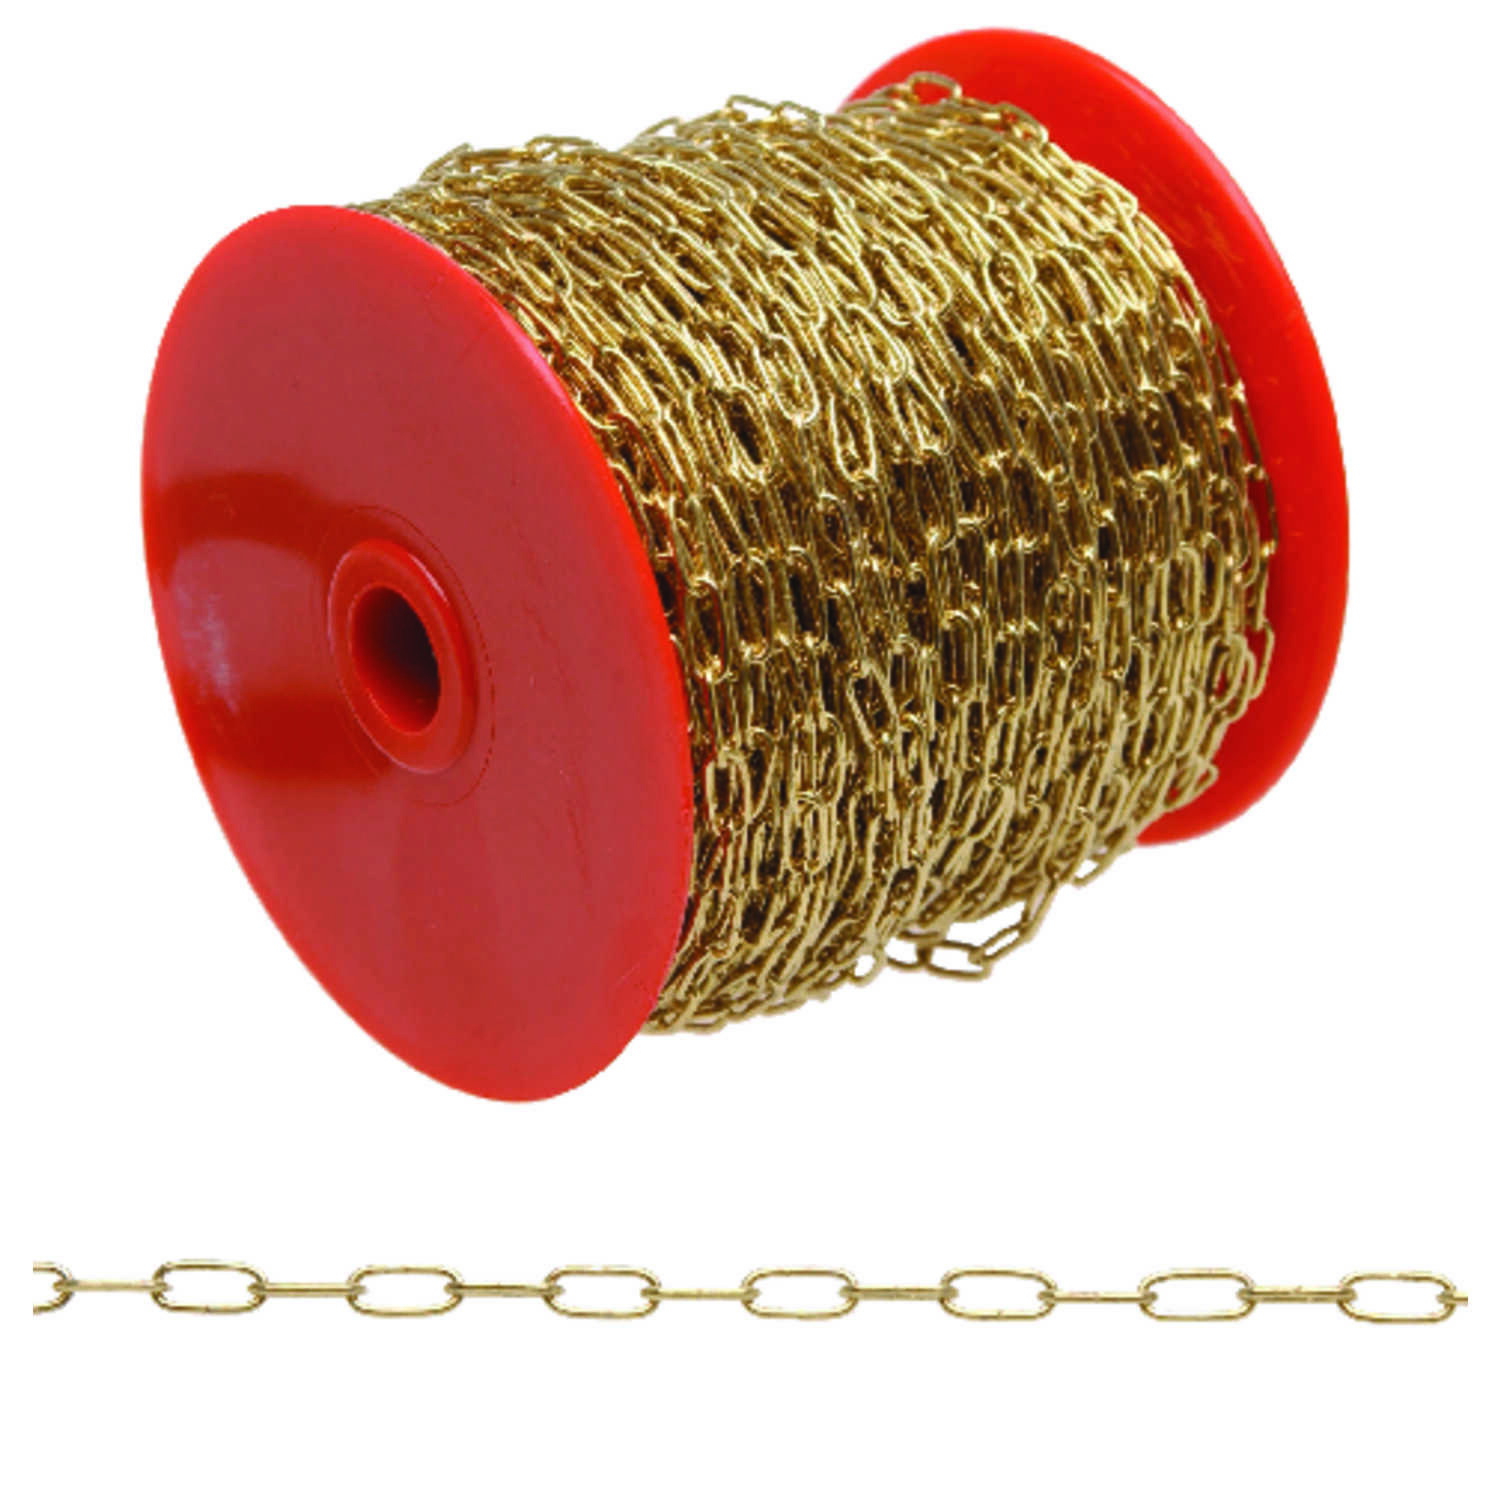 Campbell Chain  No. 5  Brass Plated  Yellow  Brass  Hobby/Craft Chain  5/16 in. Dia. 0.3 in.